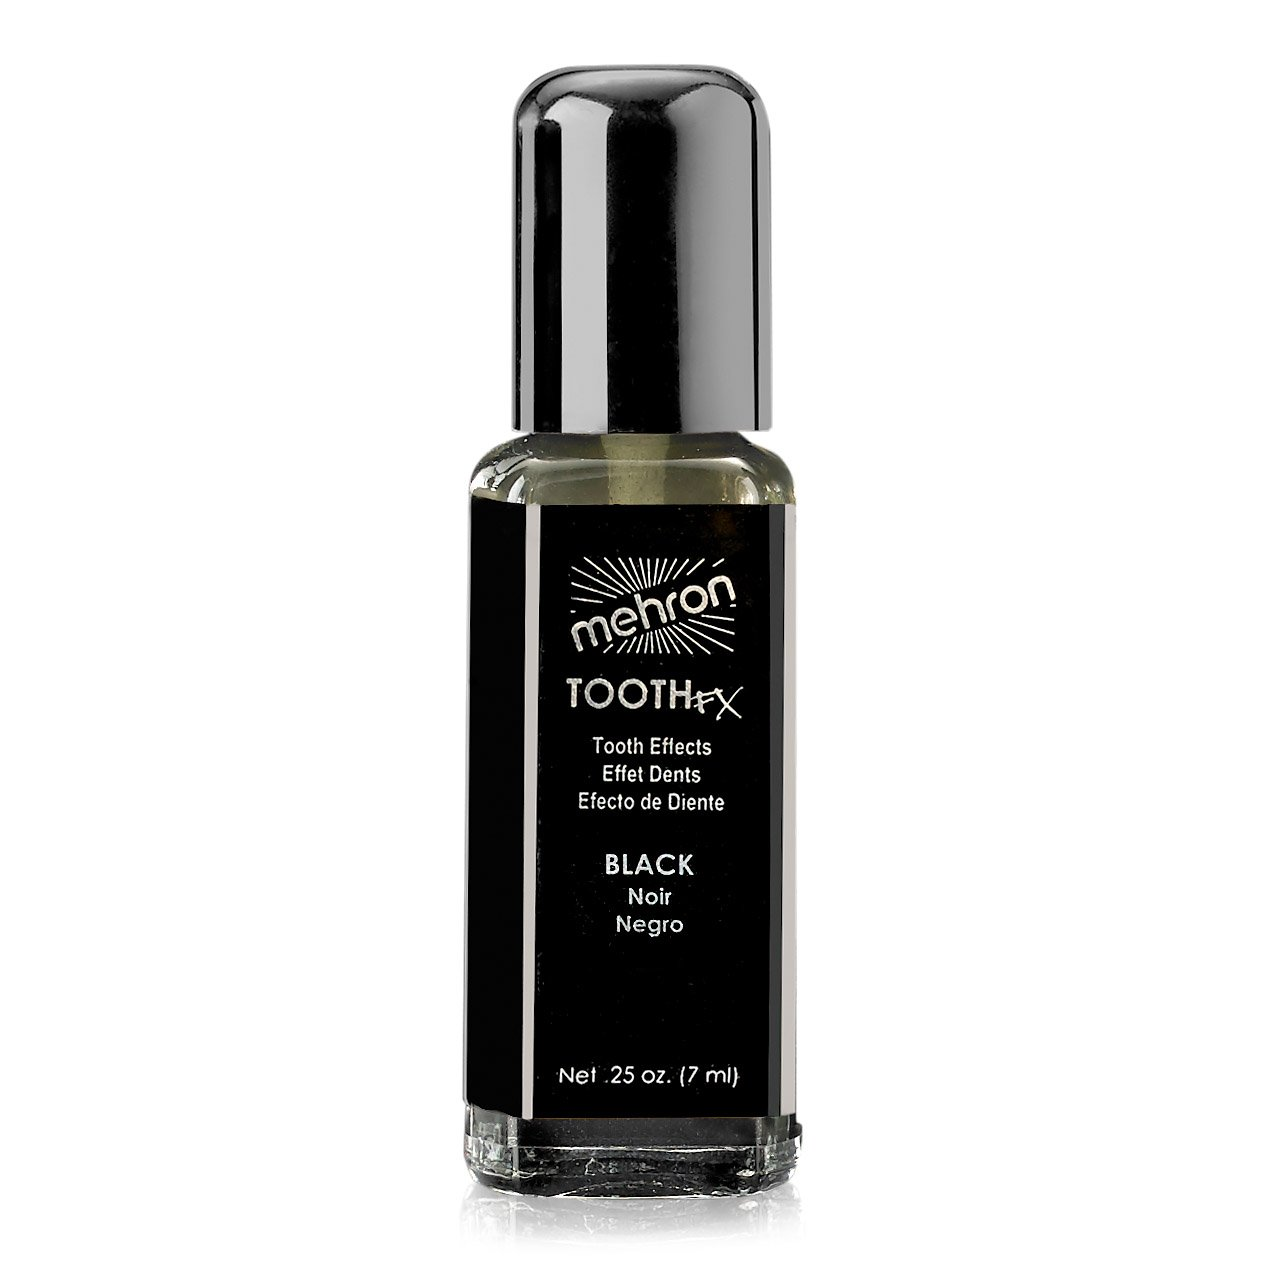 Mehron Tooth Fx Tooth Black Special Effects Makeup. 0.25 Fluid Ounces